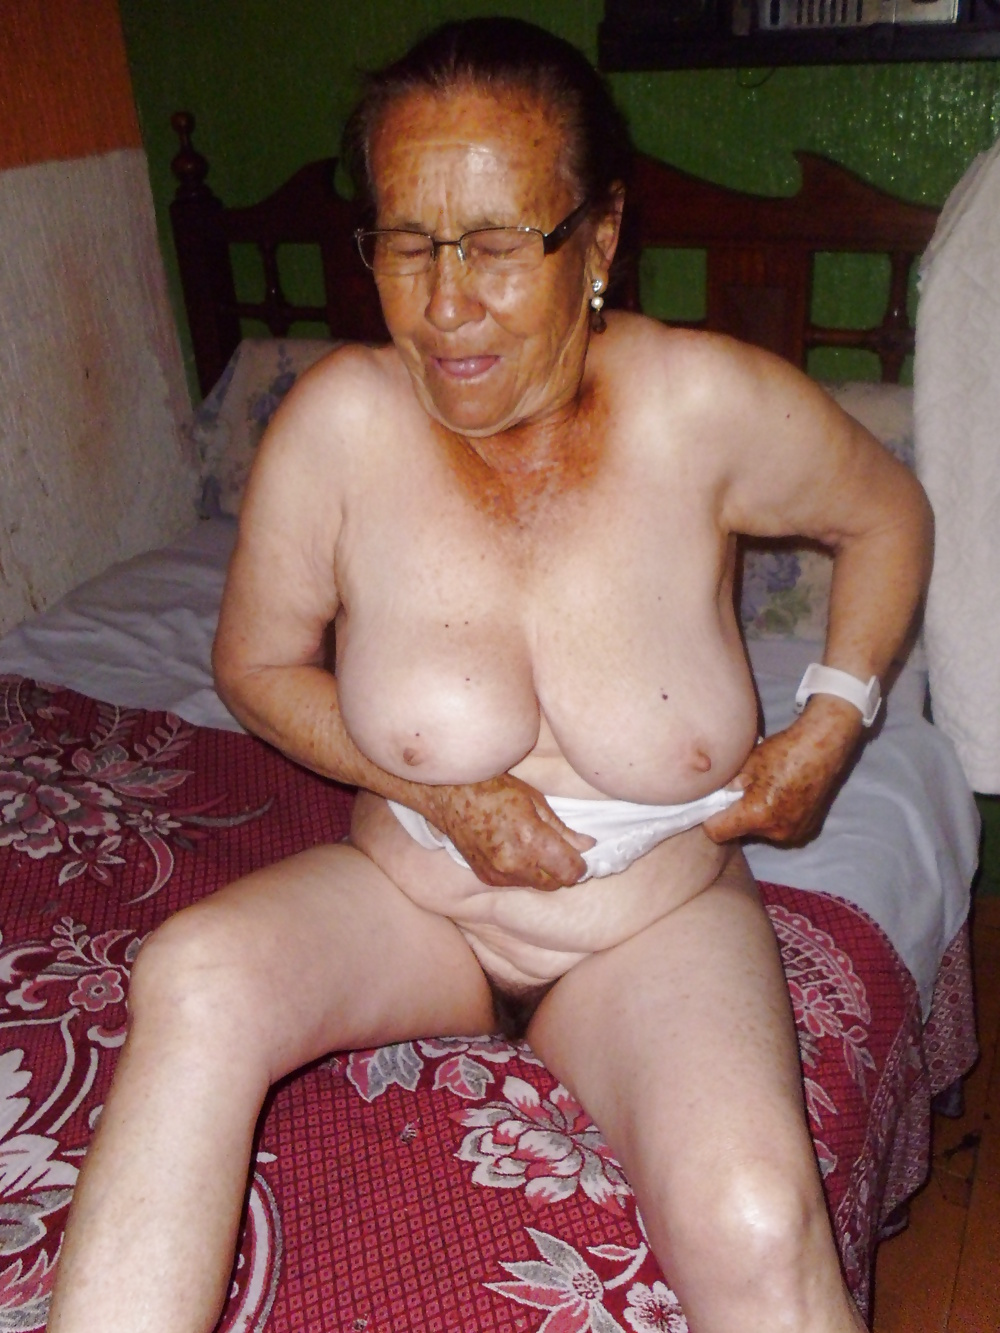 Girl anal malay granny sex pic perverted